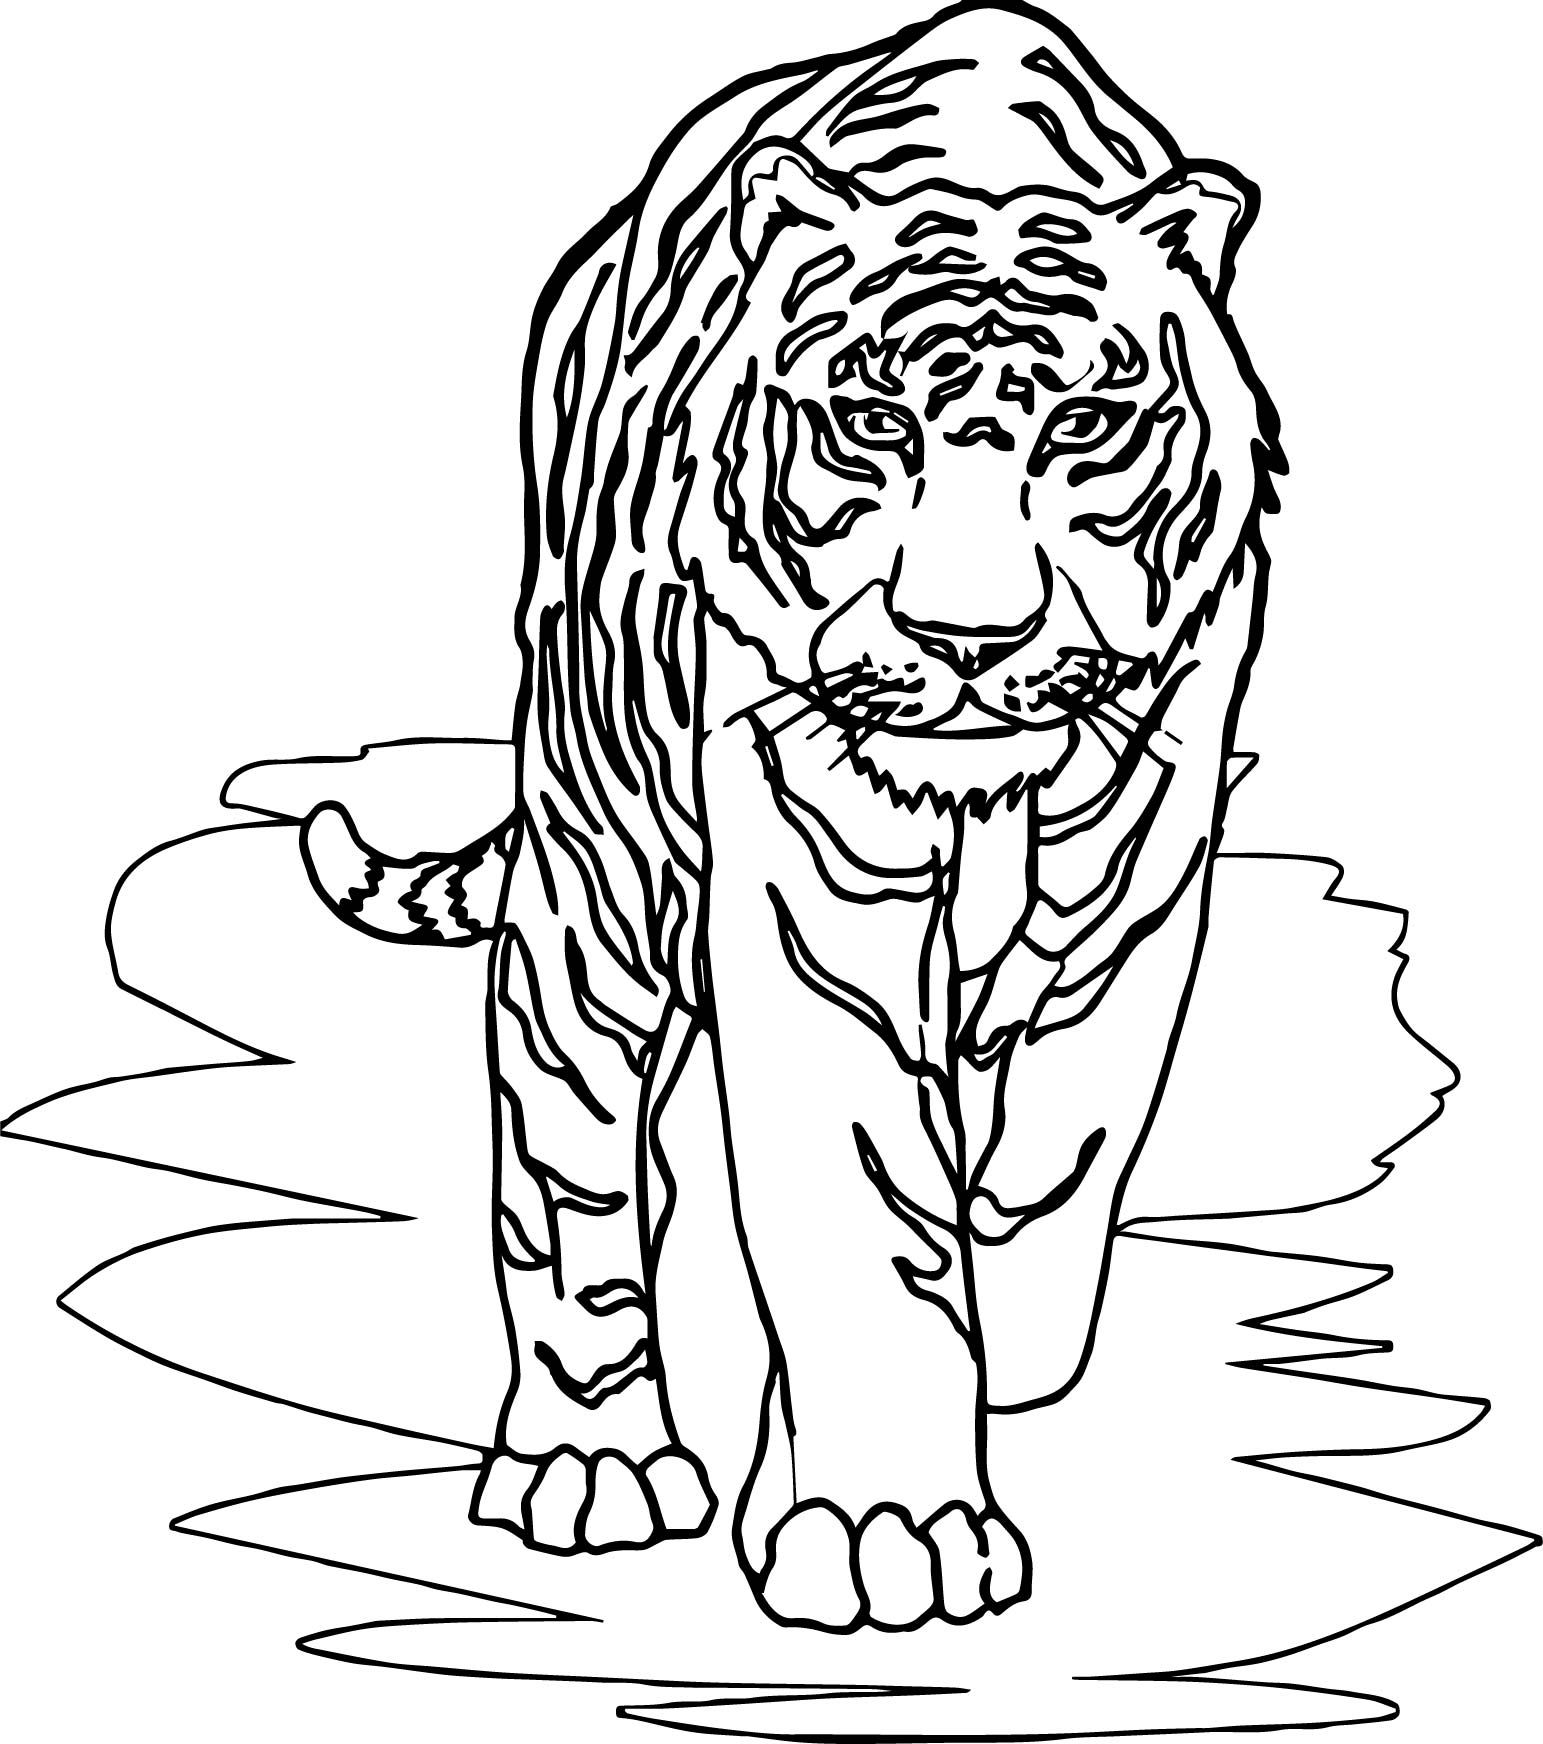 Cool Tiger Front Walking Coloring Page